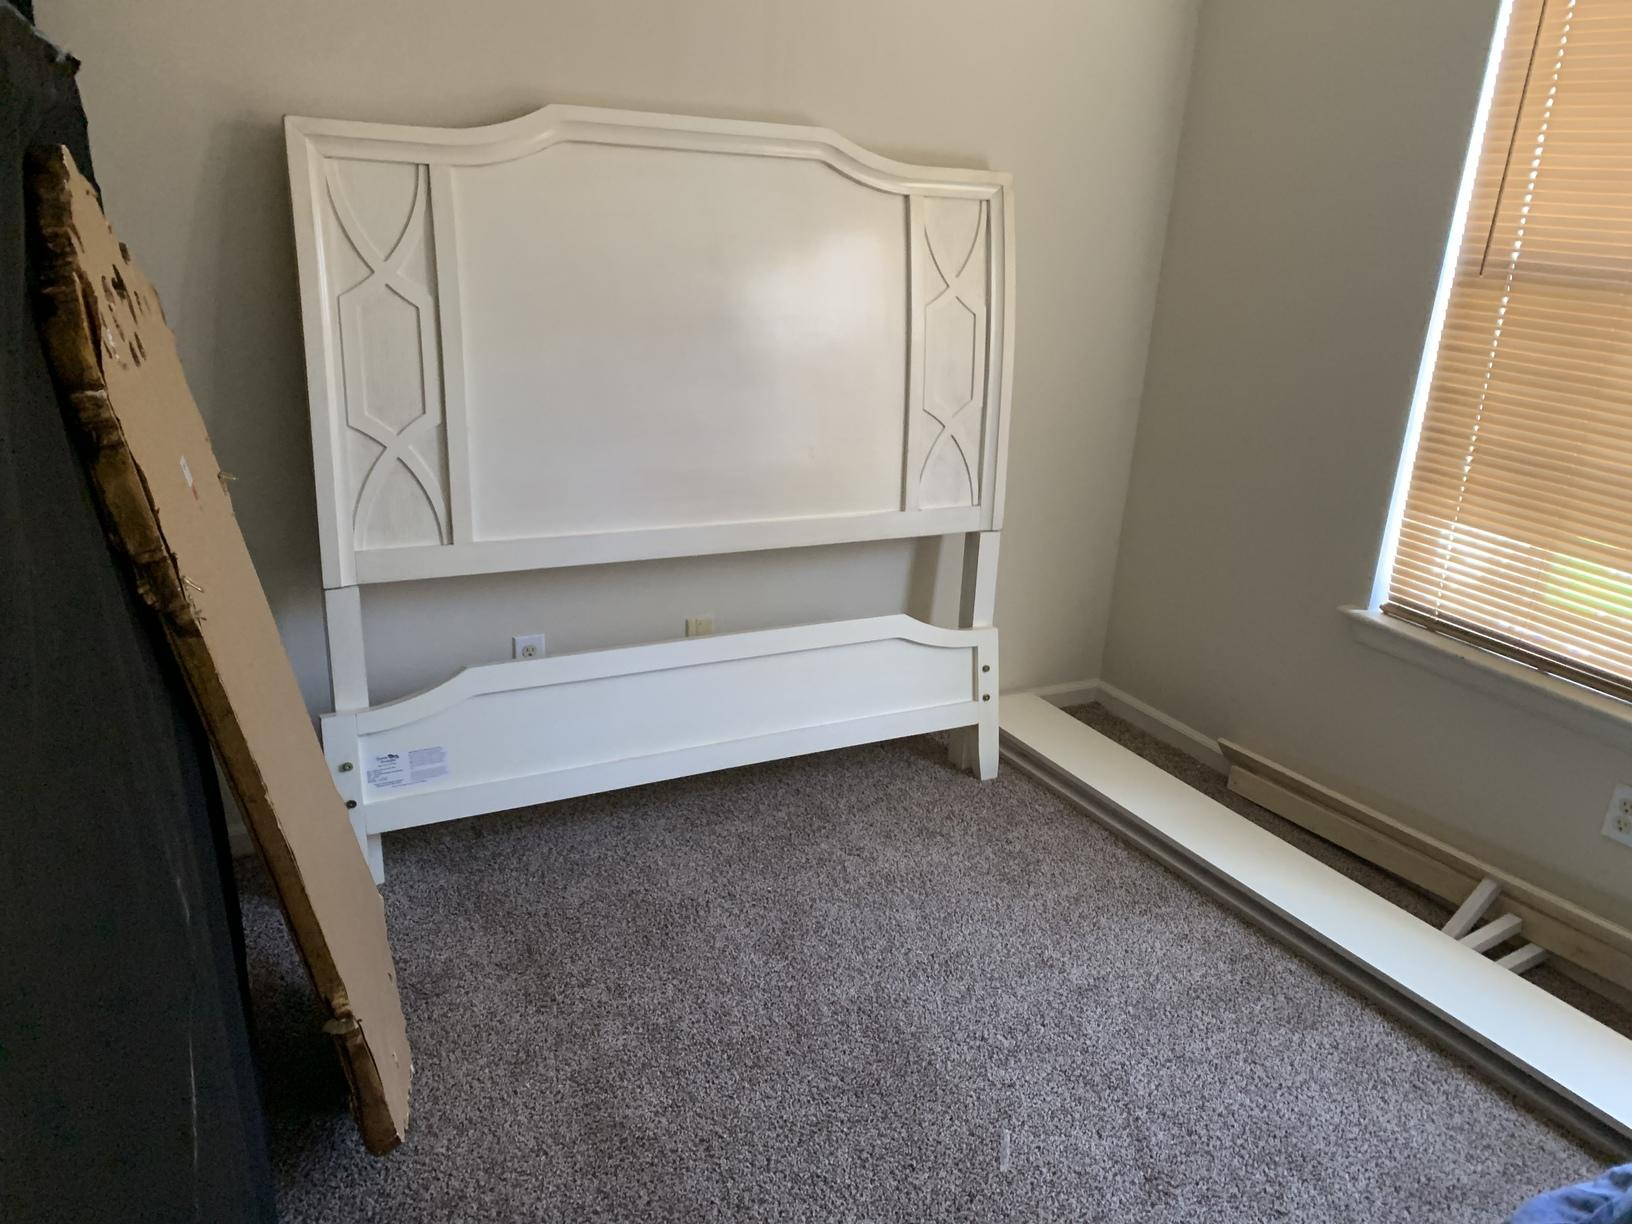 Bed Frame and Mirror